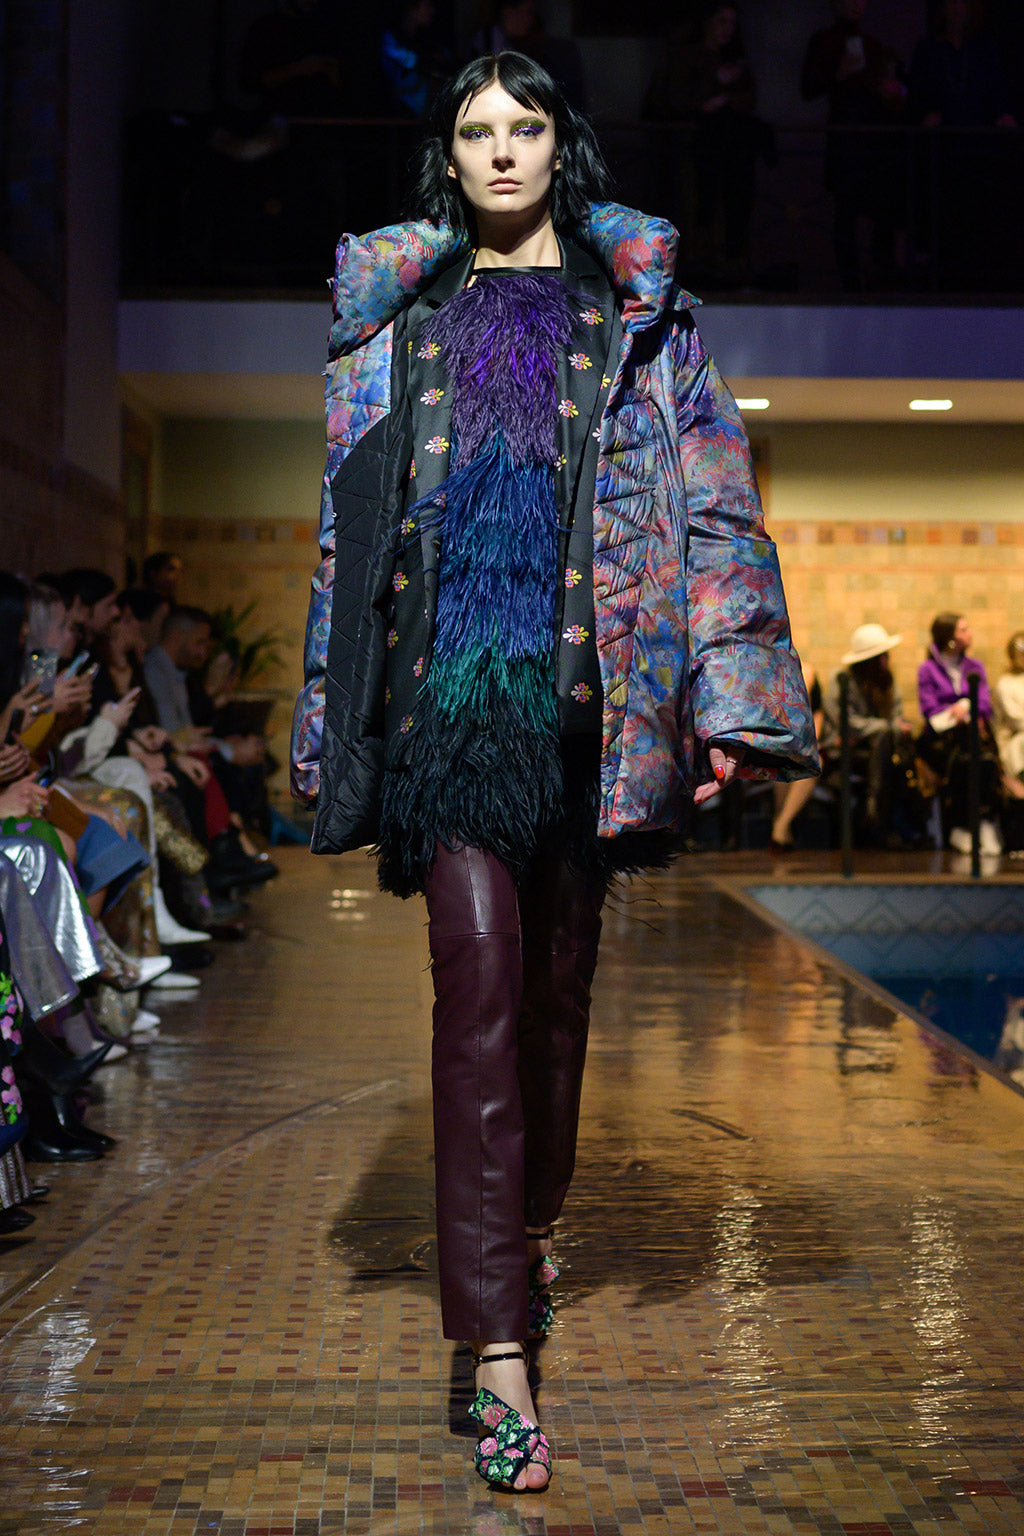 Cynthia Rowley Fall 2019 look 5 featuring a mini dress with multi-colored feathers, wine red leather pants, and puffer jacket with multi-color print